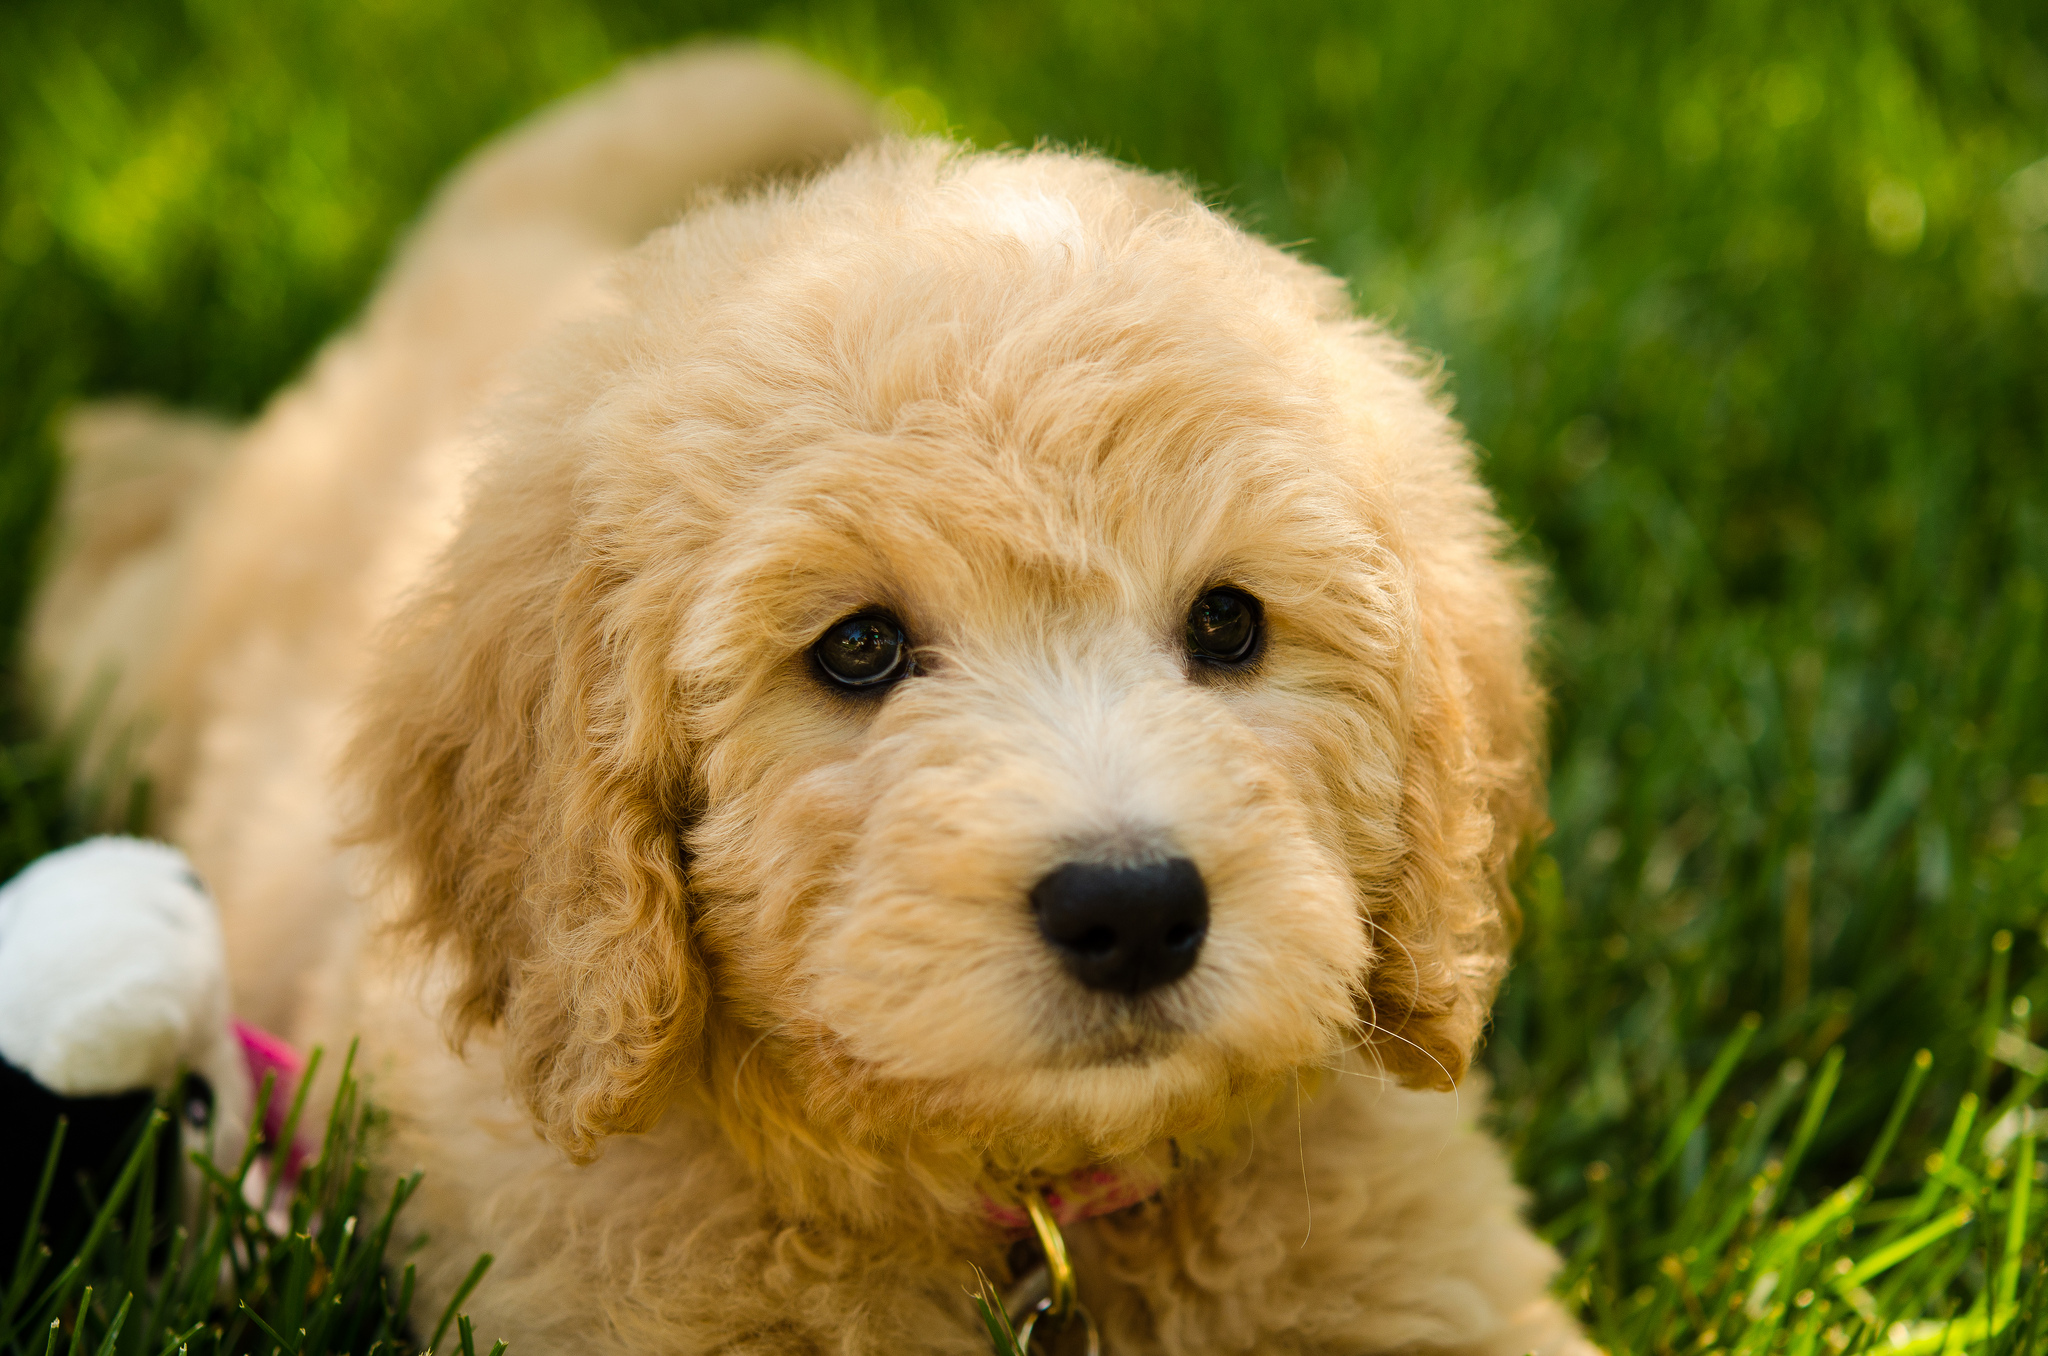 Goldendoodle, Golden Retriever Poodle Mix